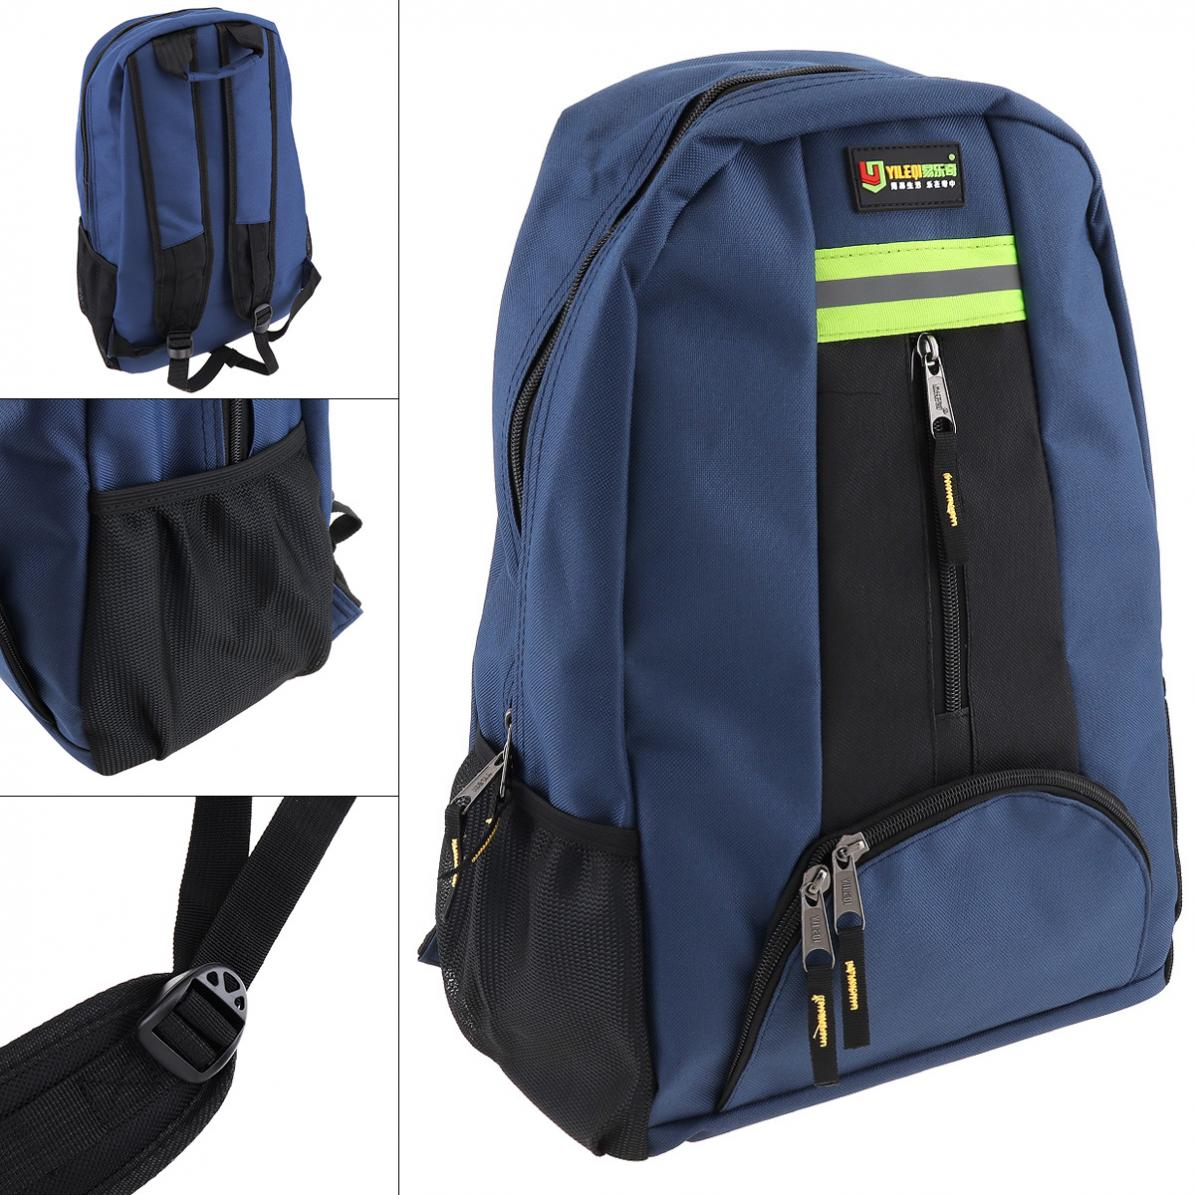 Double-shoulder Backpack Tool Bag Multifunctional Package Oxford Cloth Waterproof Bags With 12 Pockets For Maintenance Tools